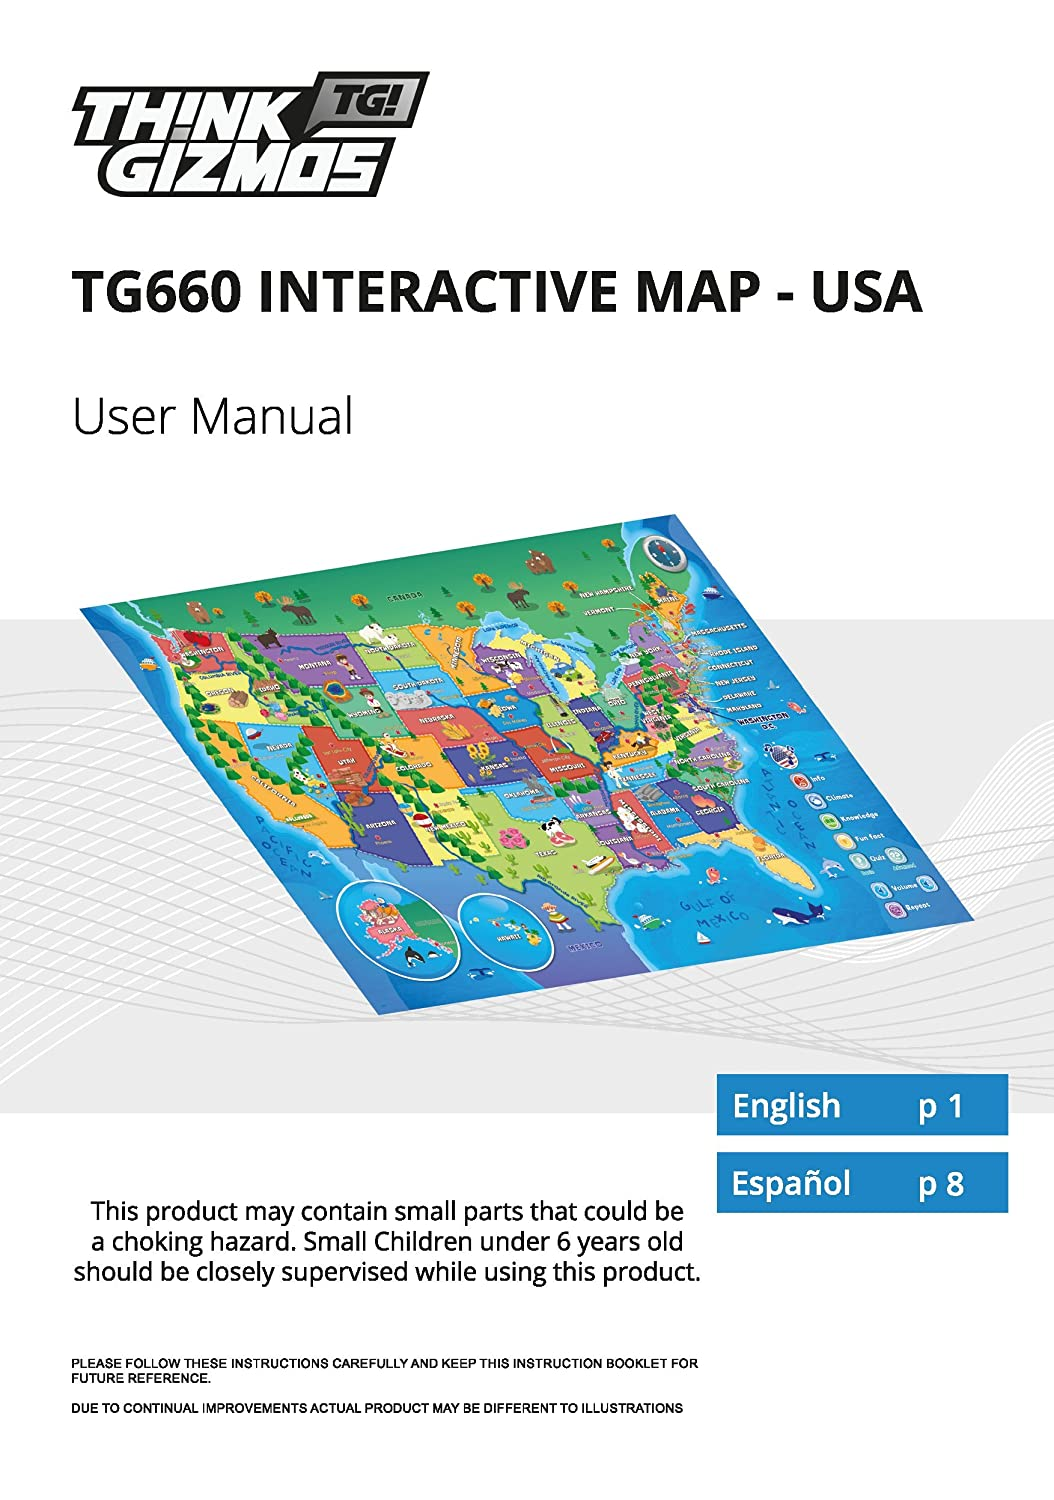 Amazon interactive talking usa map for kids tg660 push learn amazon interactive talking usa map for kids tg660 push learn and discover over 500 facts about the usa ideal interactive learning toy gift for sciox Choice Image